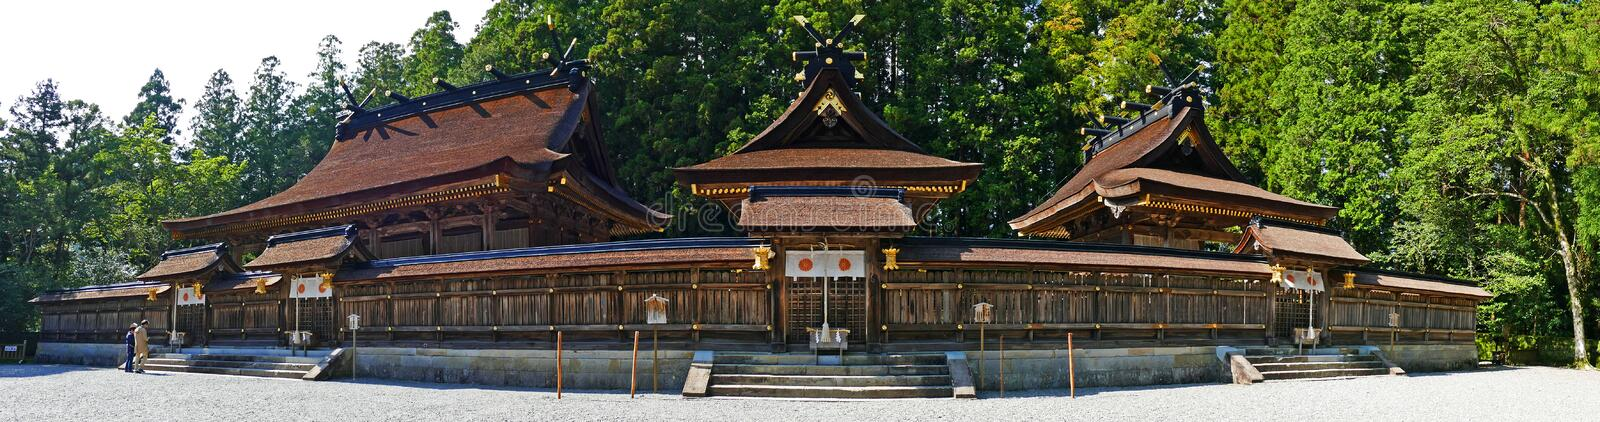 Panoramic View Ancient Kumano Hongu Taisha Grand Shrine in Wakayama, Japan stock image